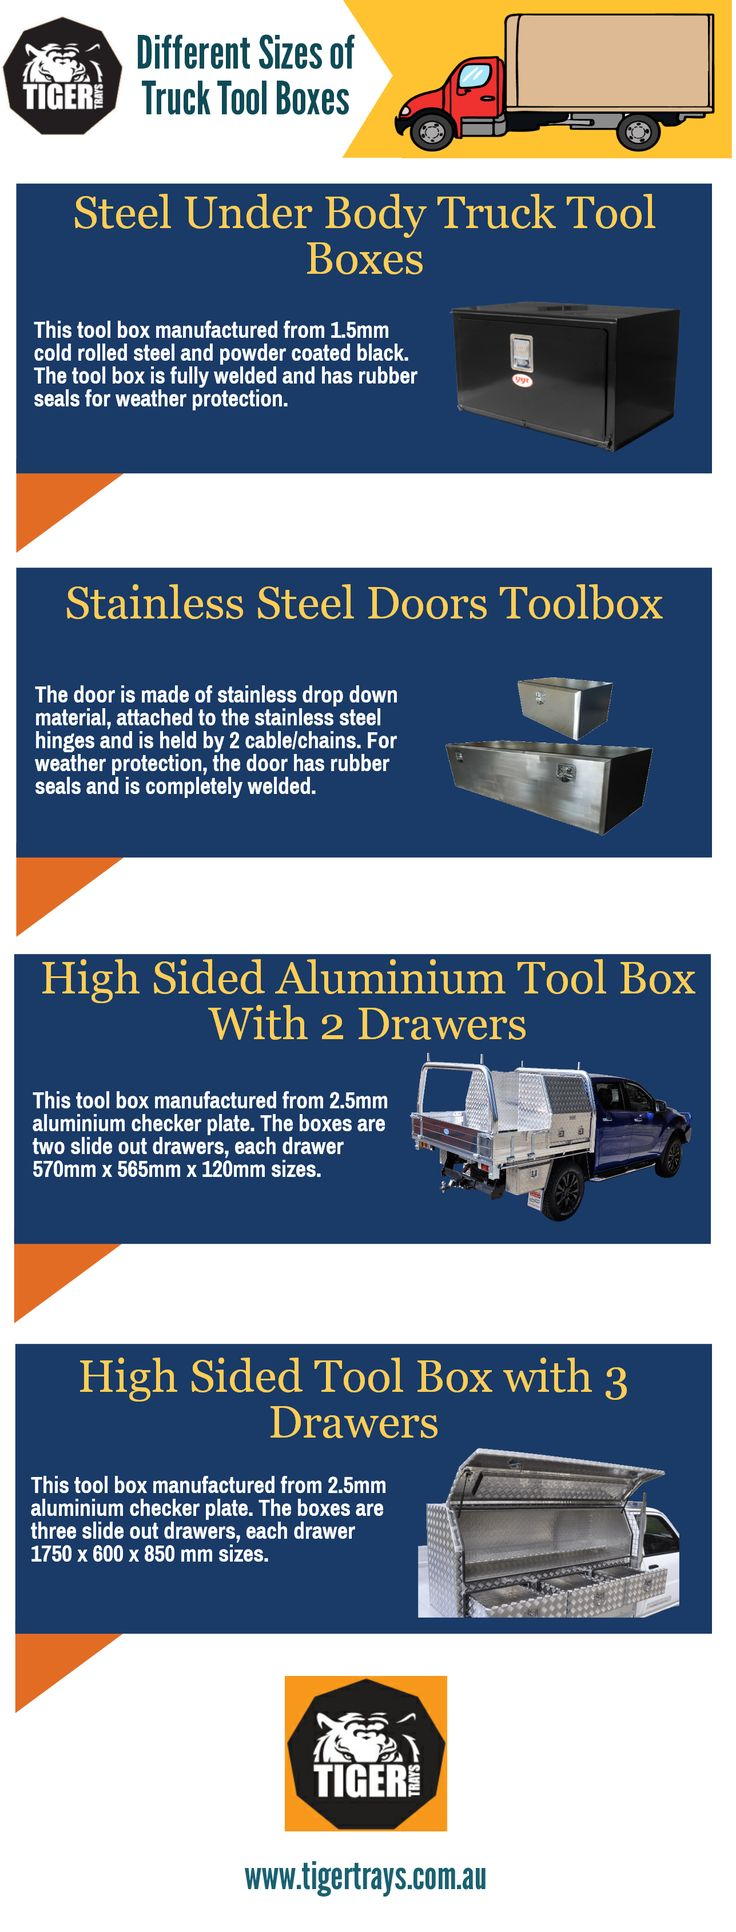 Truck tool boxes come in a wide variety. While every tool box serve different purpose, its important to know which will be better for you as per your needs. So, read this infographic to know more about different types of tool boxes.